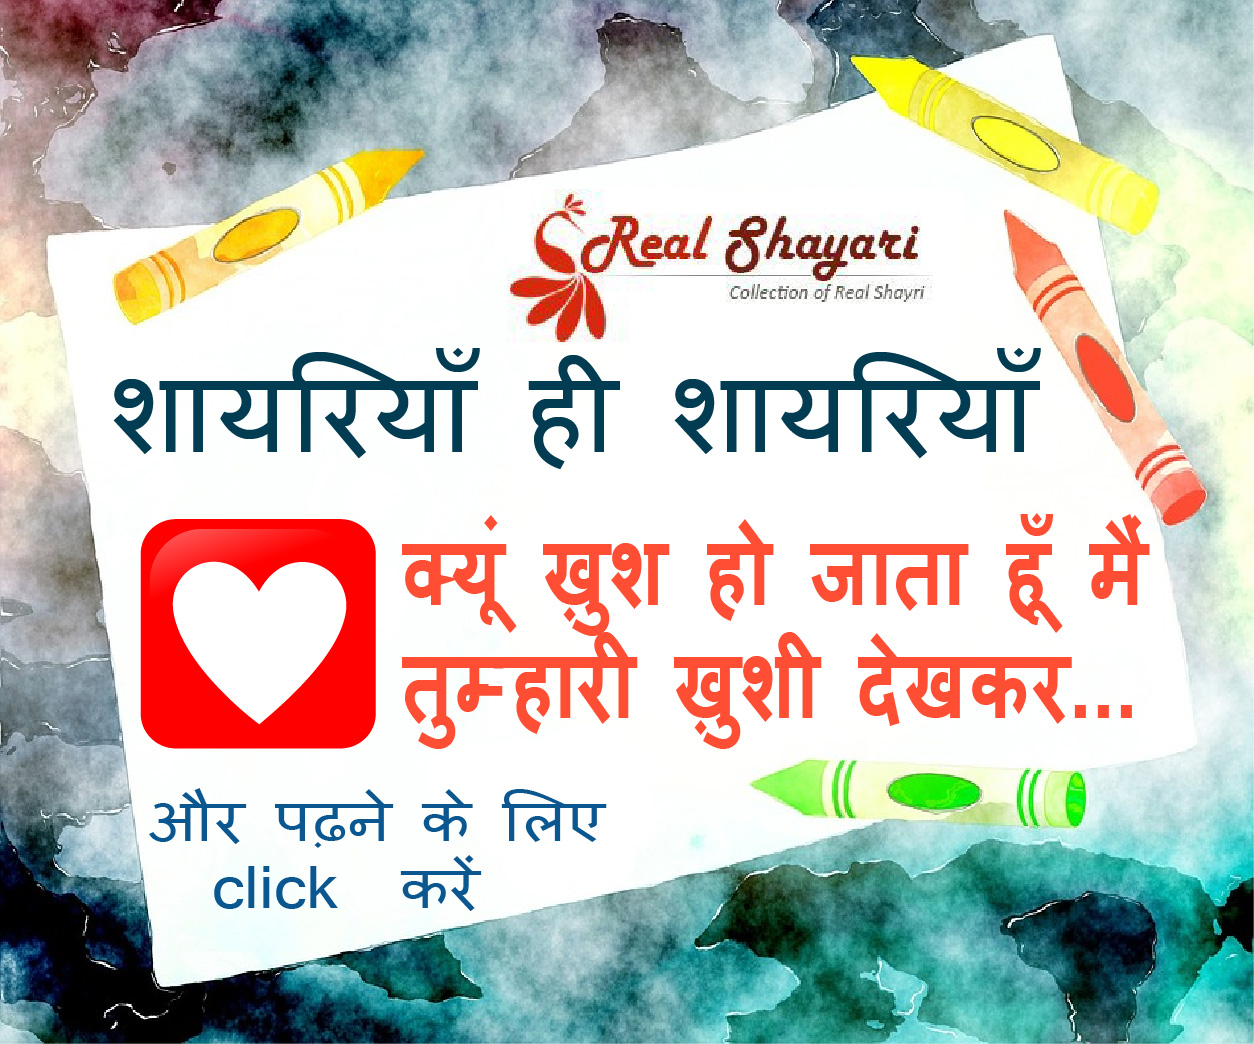 Real Shayari Advertisement